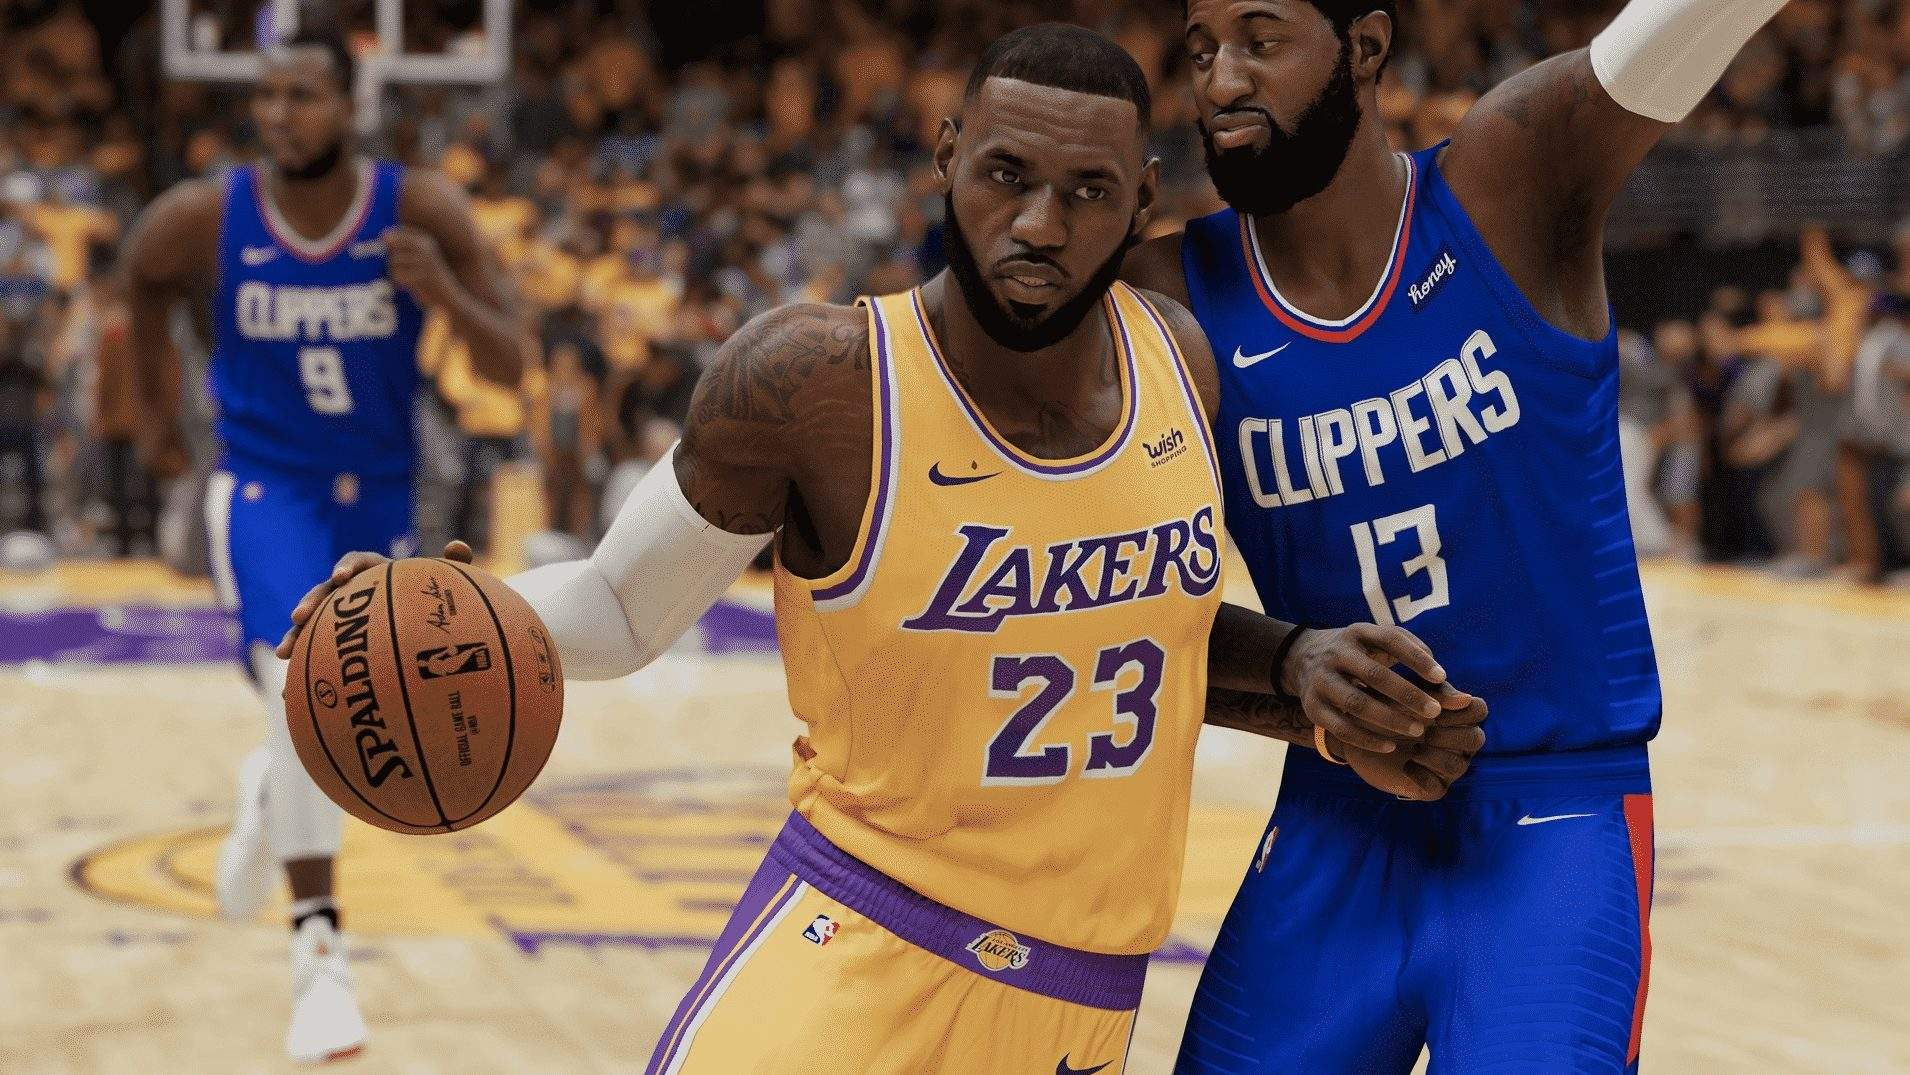 NBA 2K22: BEST POINT GUARD IN THE GAME OF BASKETBALL